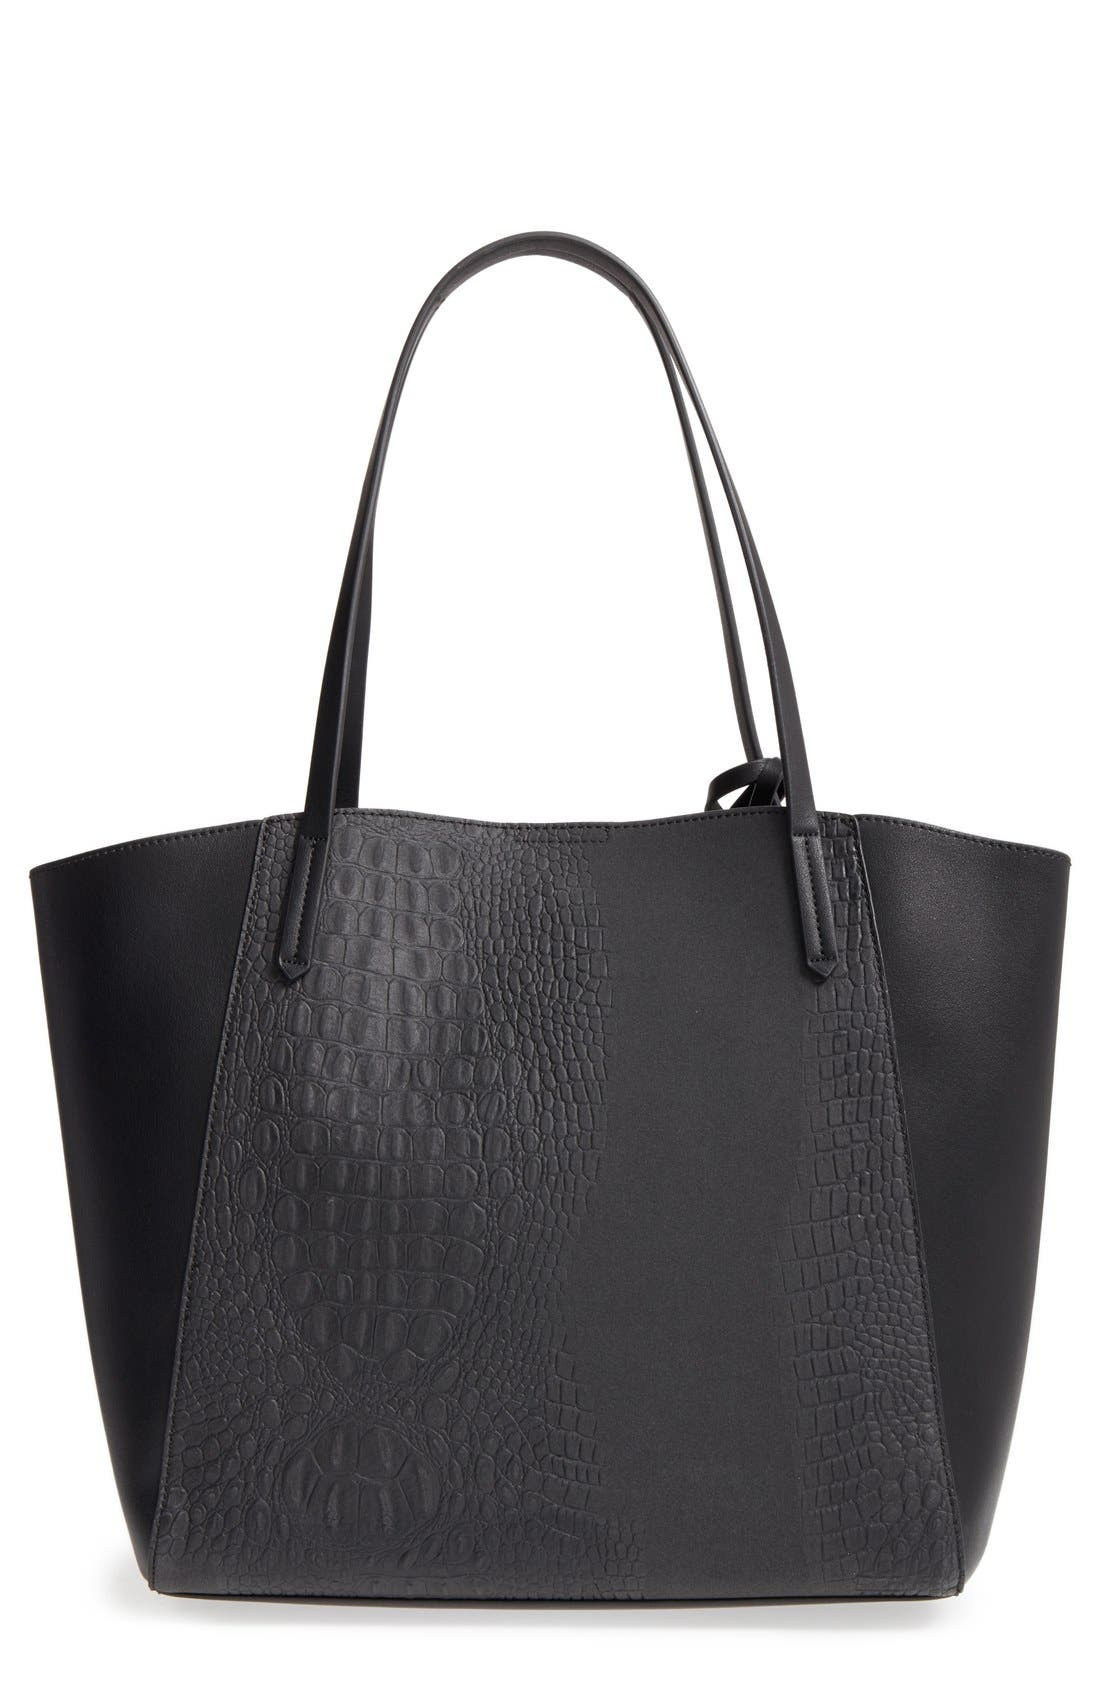 Alternate Image 1 Selected - BP. Embossed Faux Leather Tote